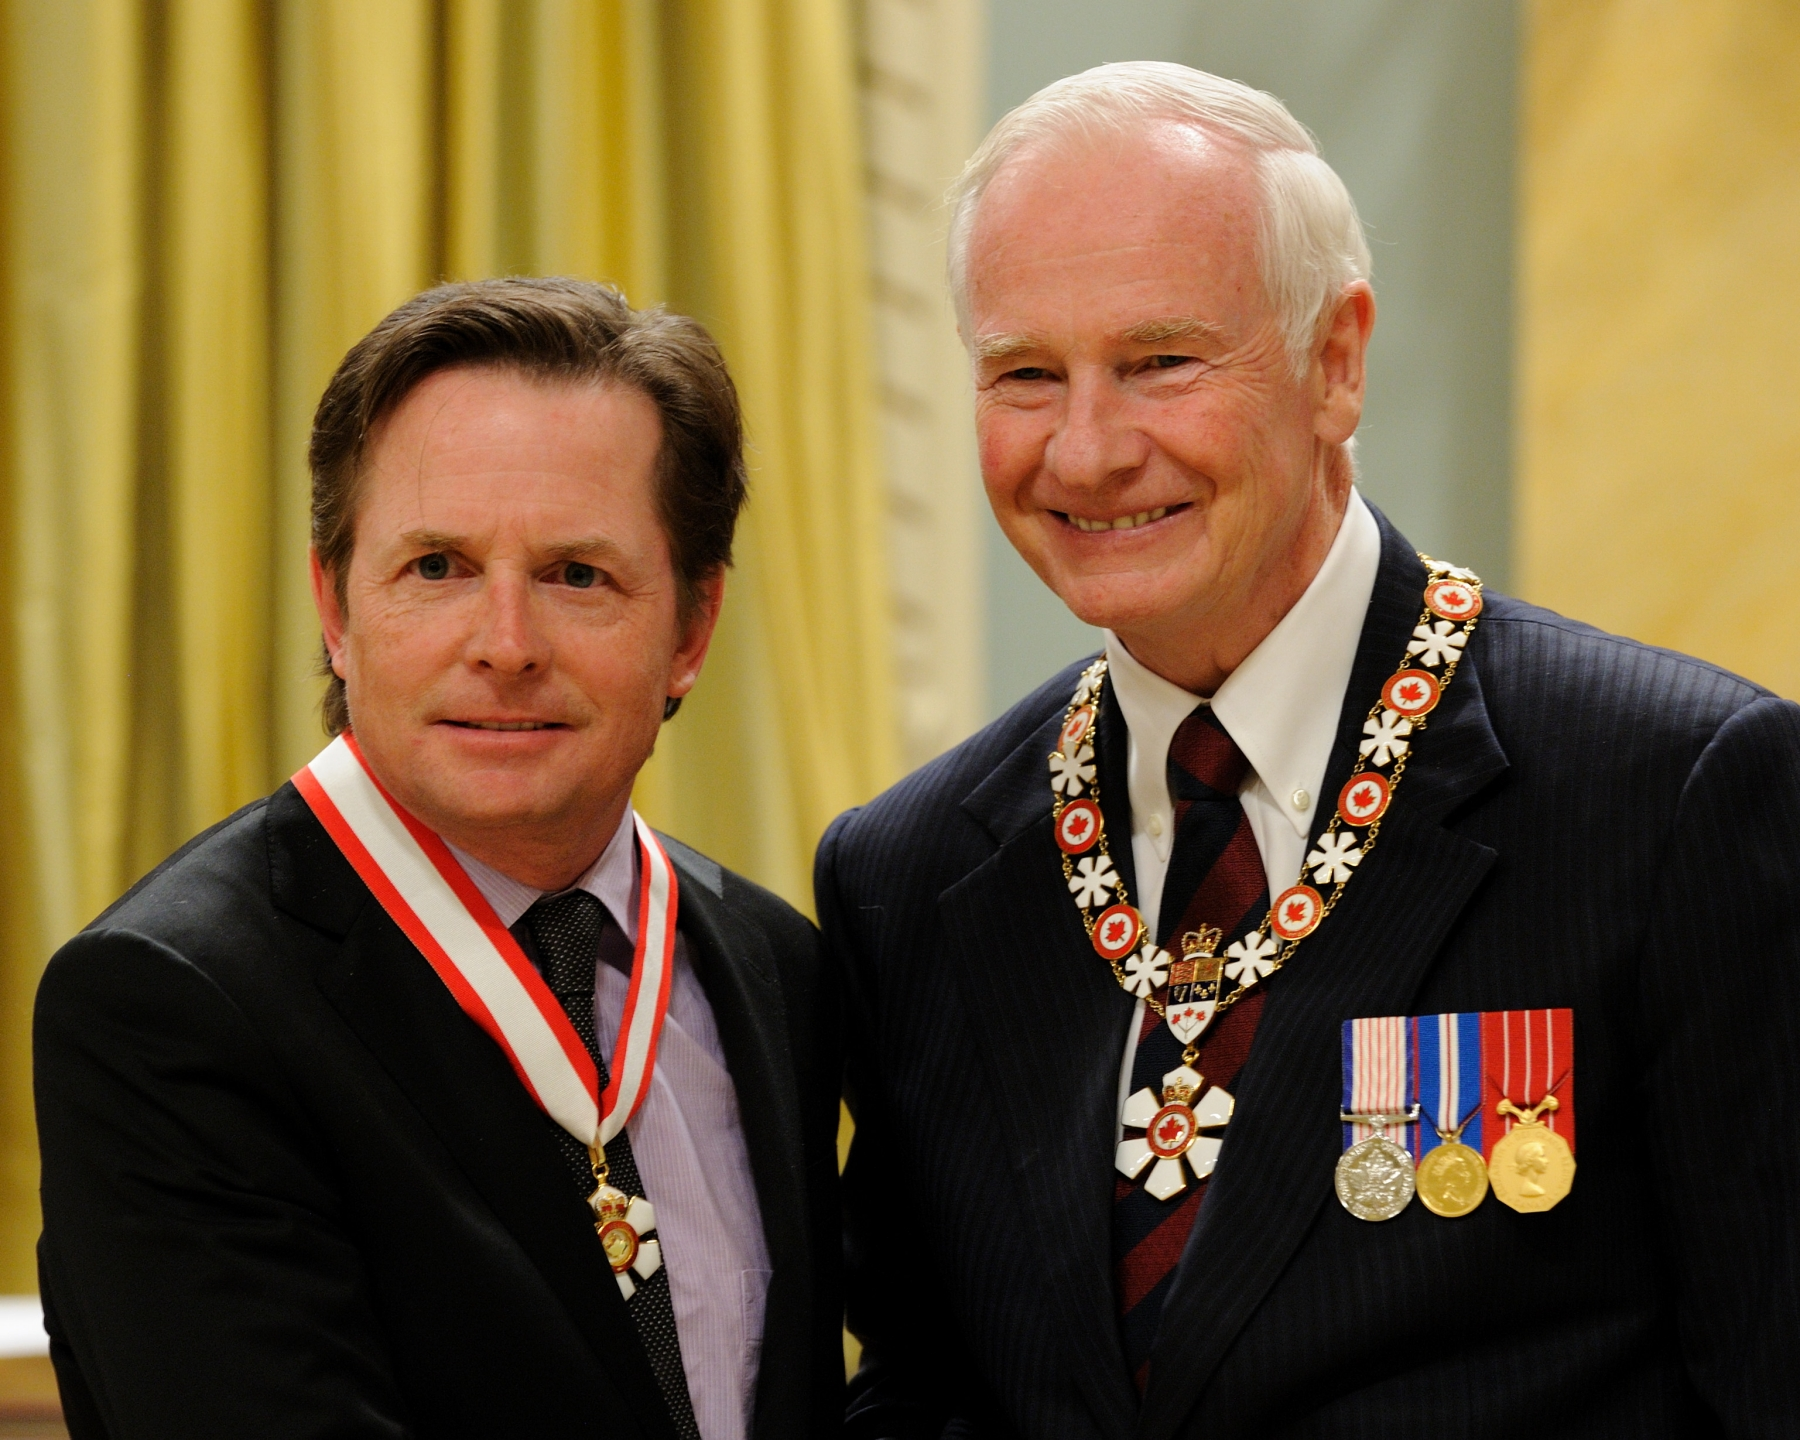 "Michael J. Fox (New York, New York, U.S.A. and Vancouver, British Columbia) is an outspoken advocate for people living with Parkinson's disease, as well as a respected and accomplished screen actor. He is best known for his work in the television series ""Family Ties"" and ""Spin City,"" and for the Back to the Future film trilogy. Diagnosed with Parkinson's disease in the early 1990s, he has focused his creative energies on funding medical research through the Michael J. Fox Foundation for Parkinson's Research. He continues to raise funds for the development of better treatments for patients. The Canadian branch of his foundation recently gained charitable status, ensuring the financial support of Canadian medical researchers working towards the ultimate goal of finding a cure."